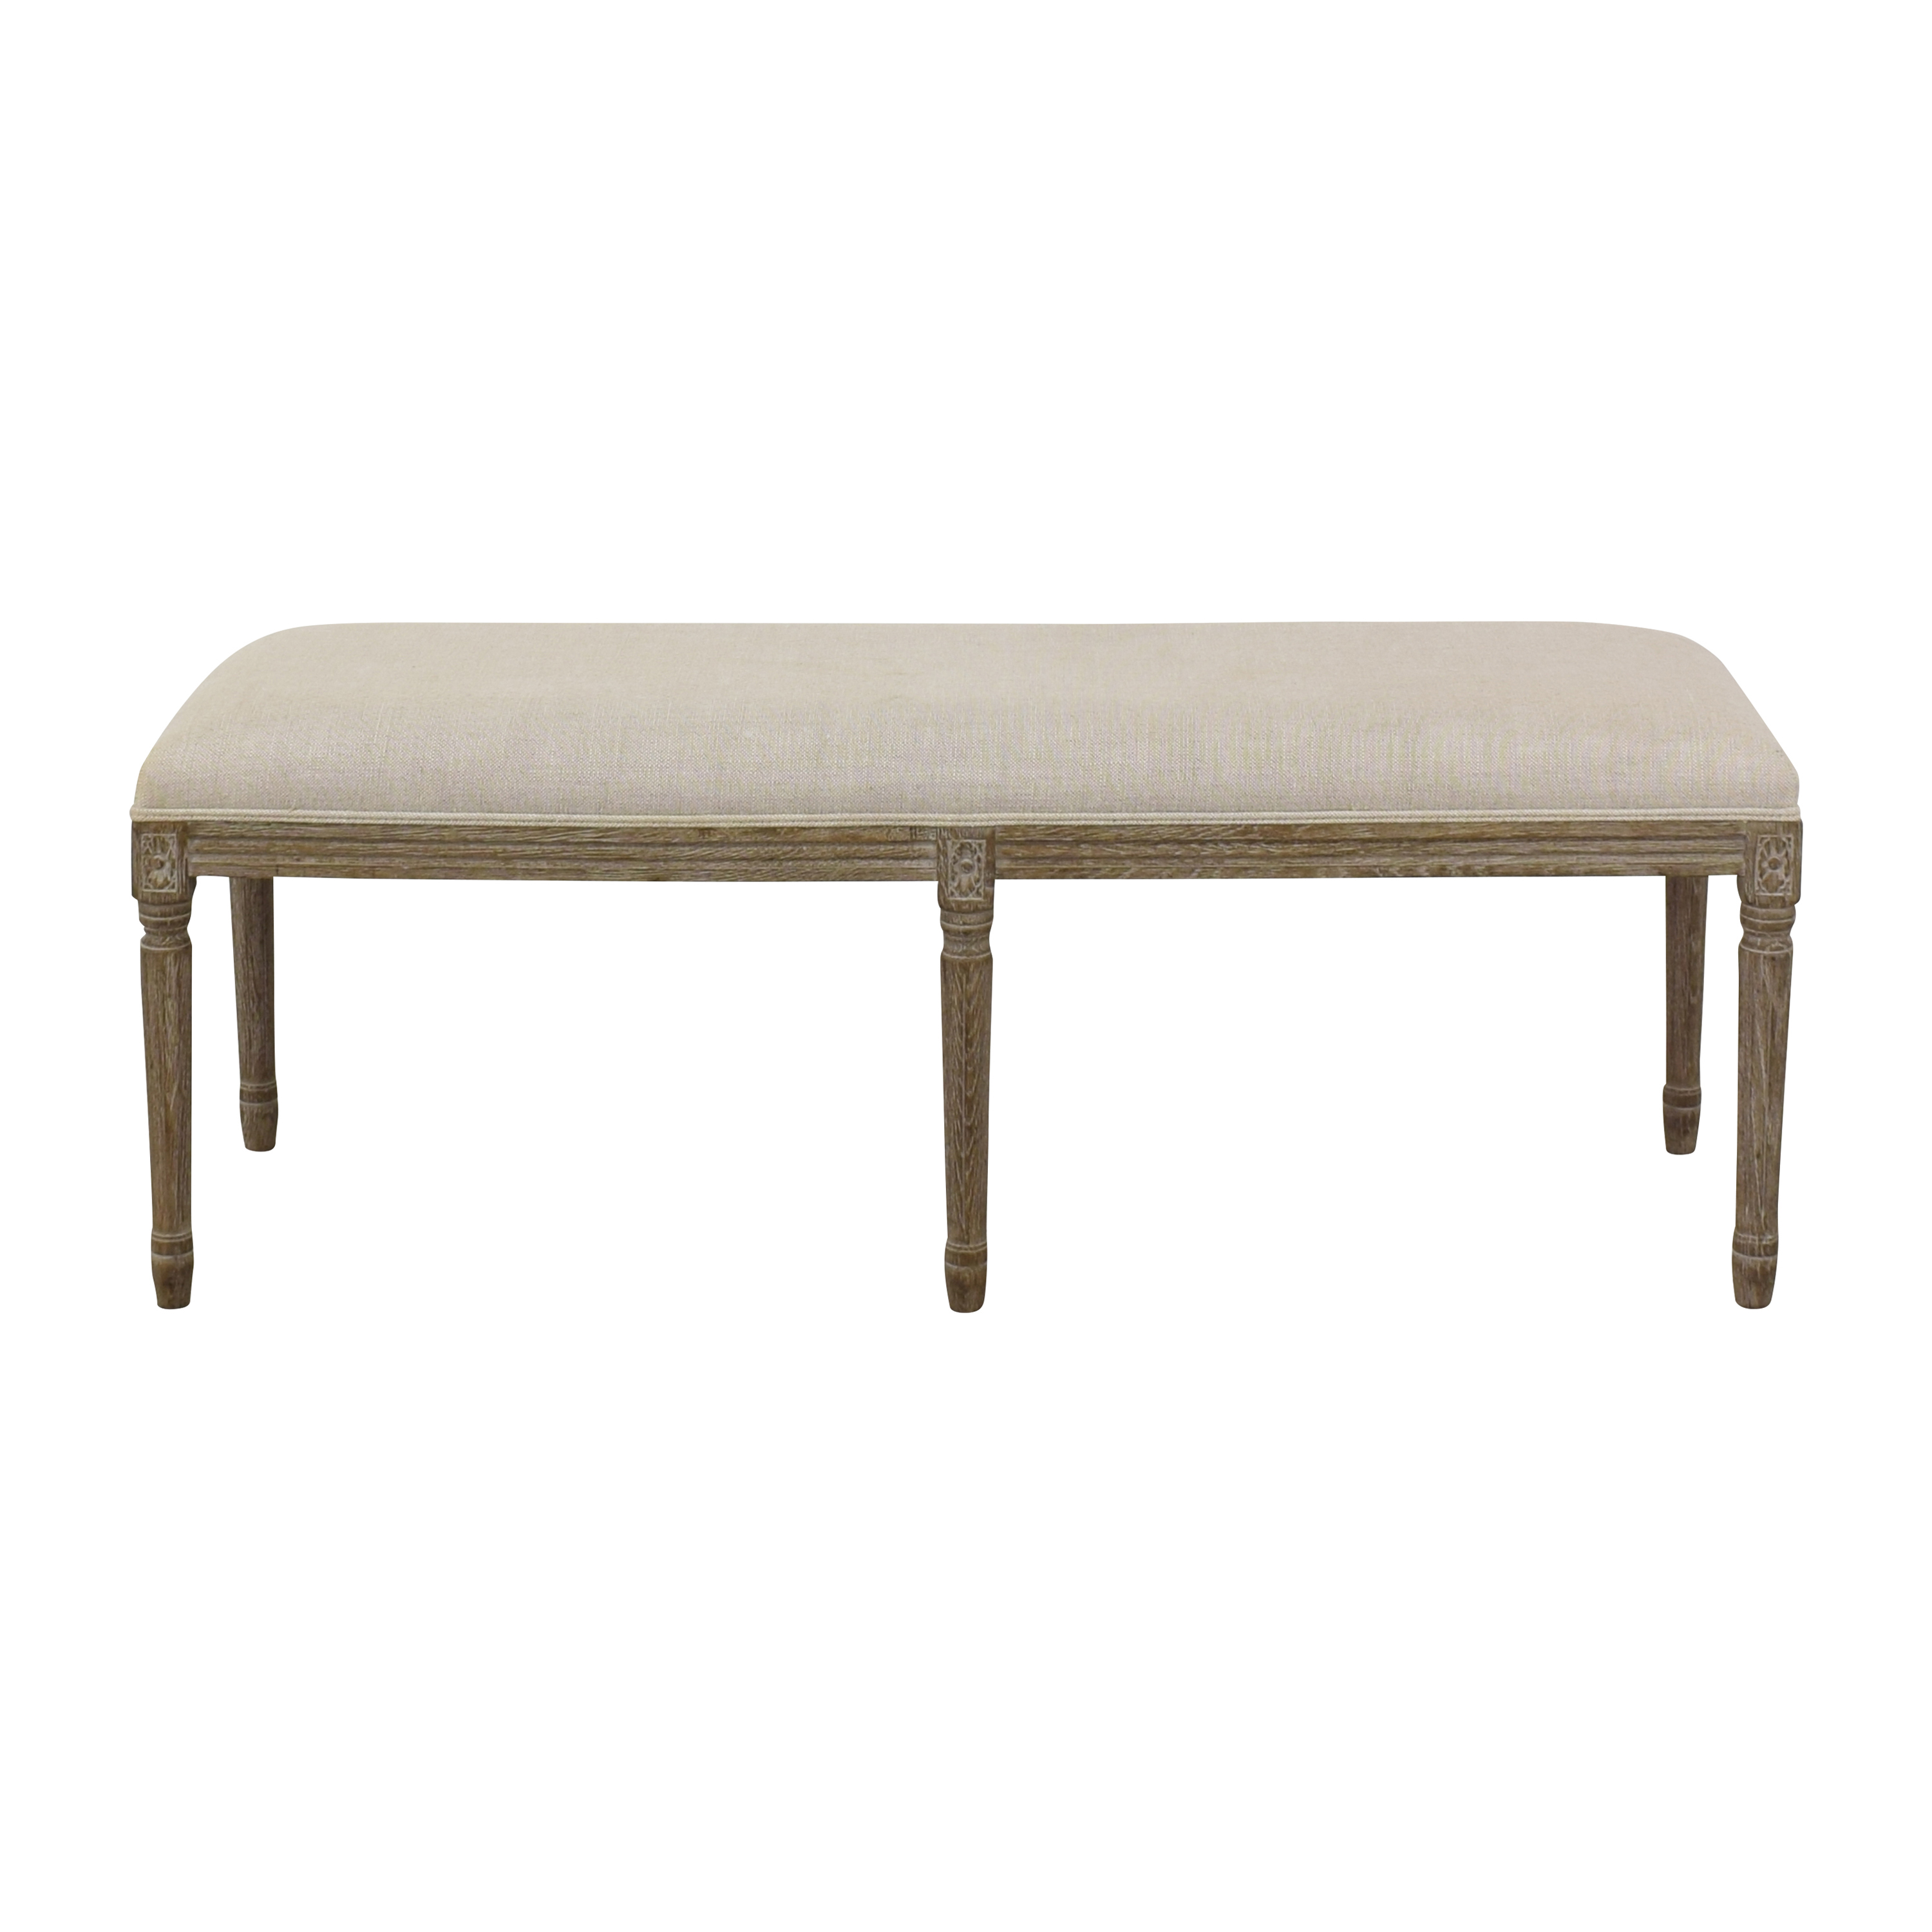 Restoration Hardware Restoration Hardware Louis Bench used